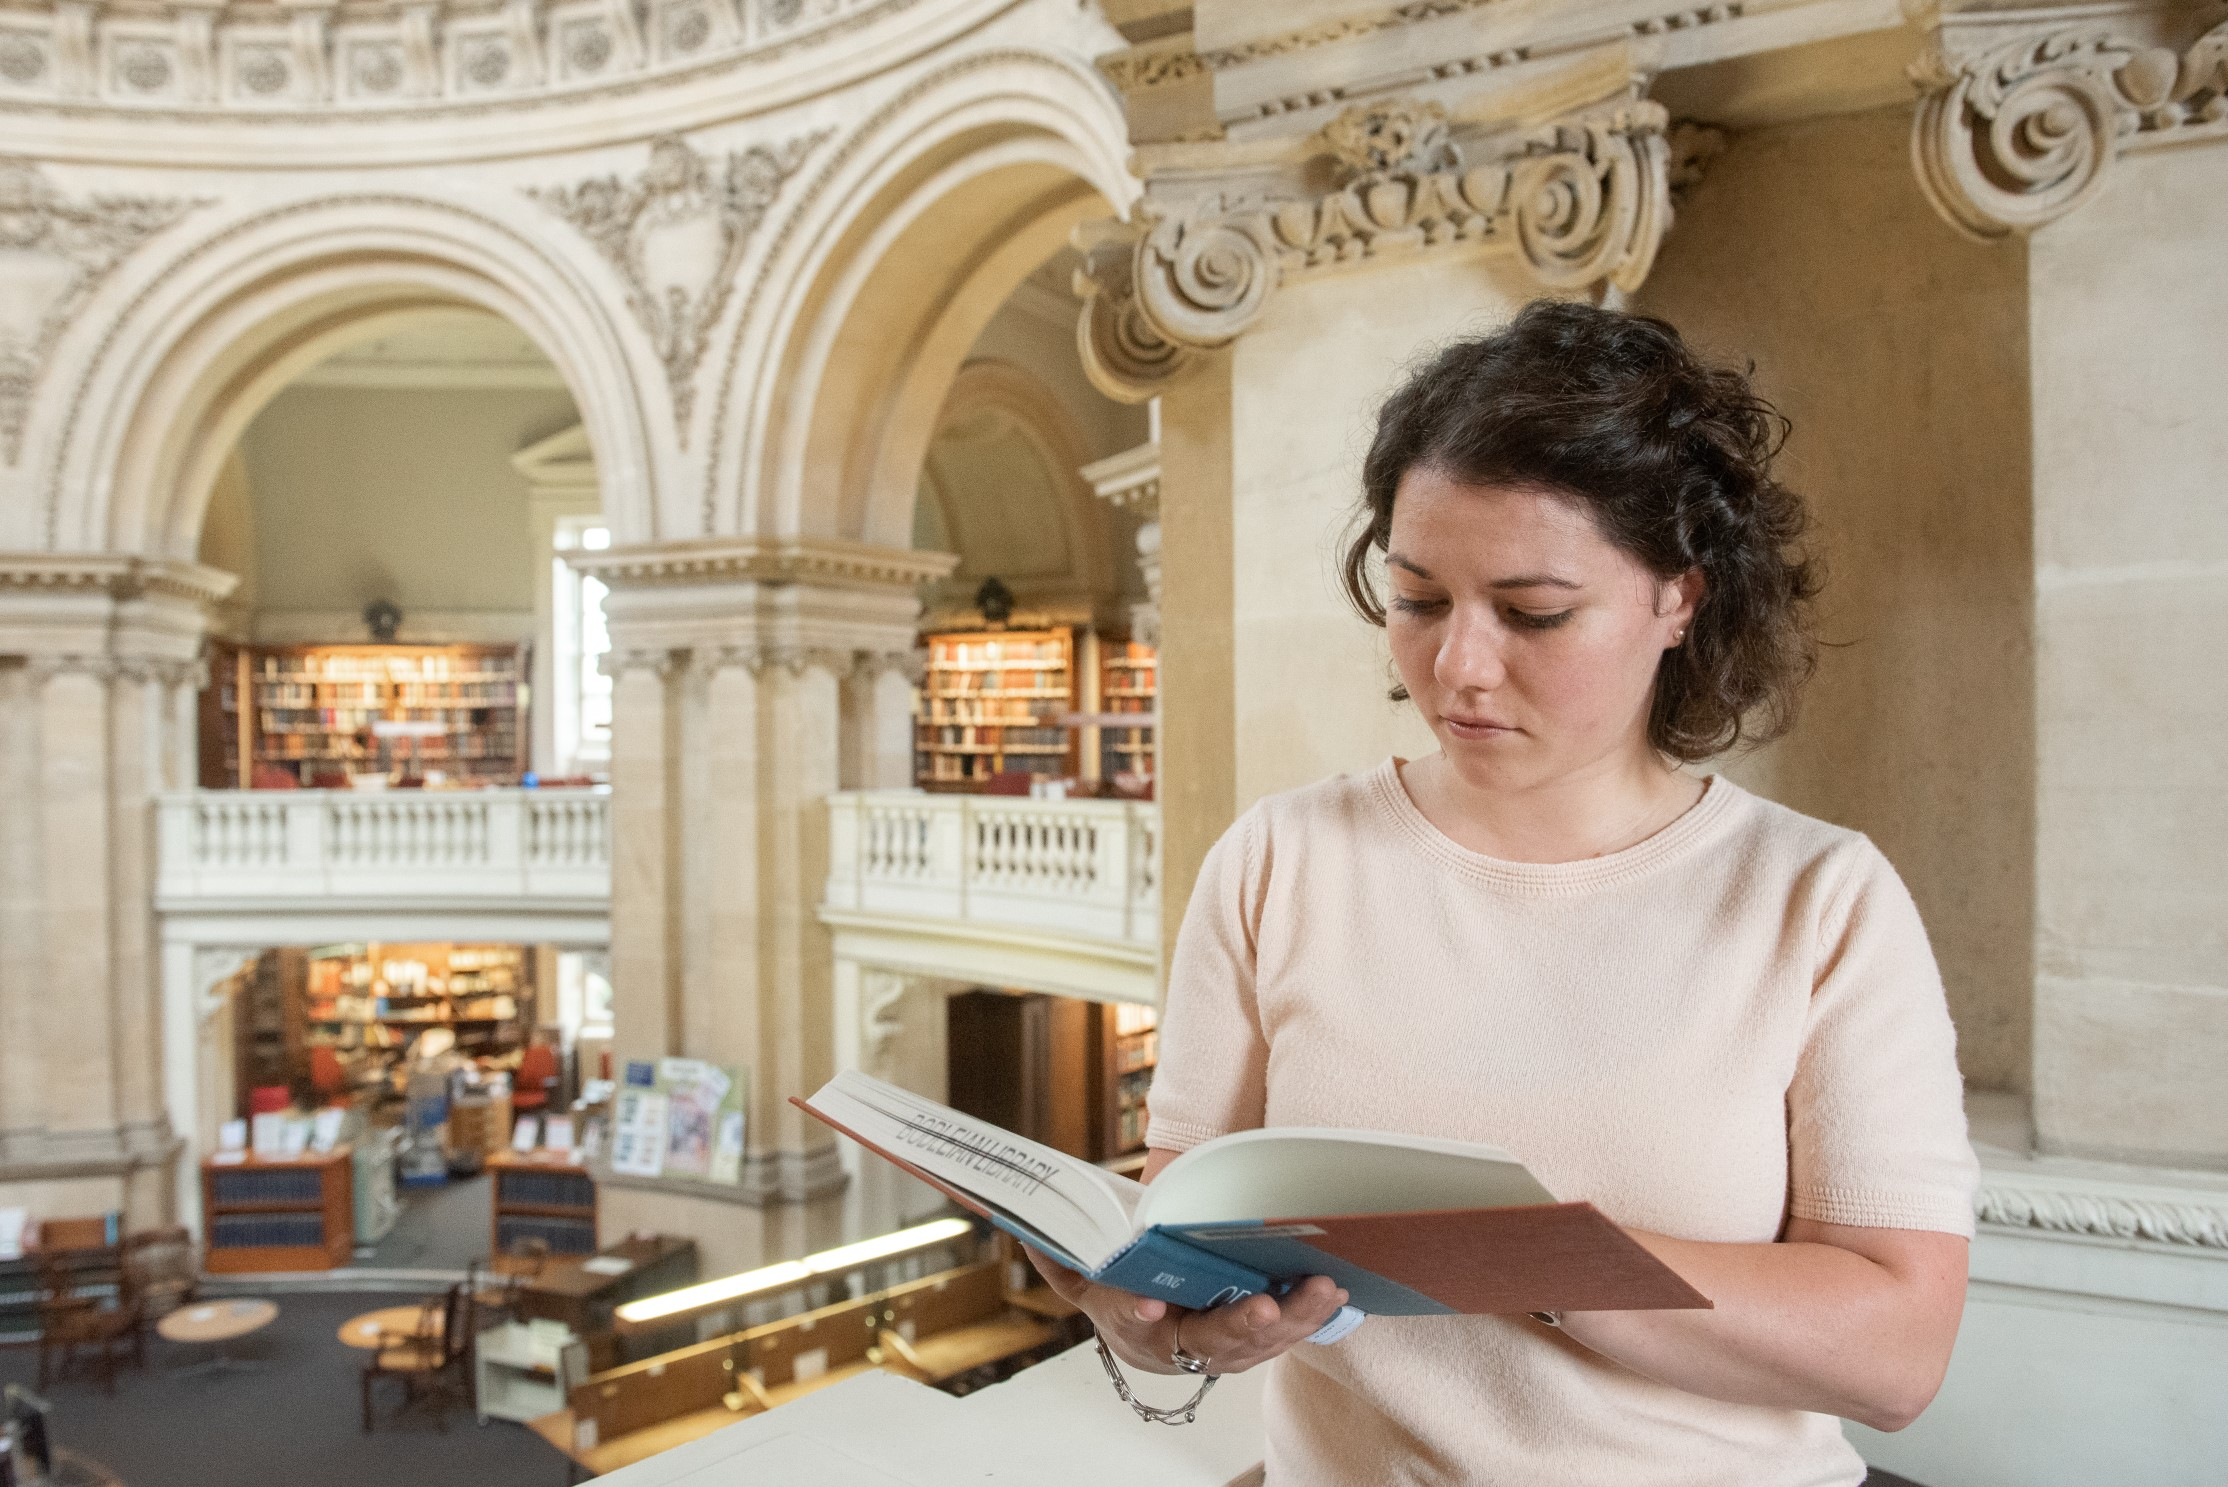 Person stood reading a book in the reading rooms of the Radcliffe Camera.